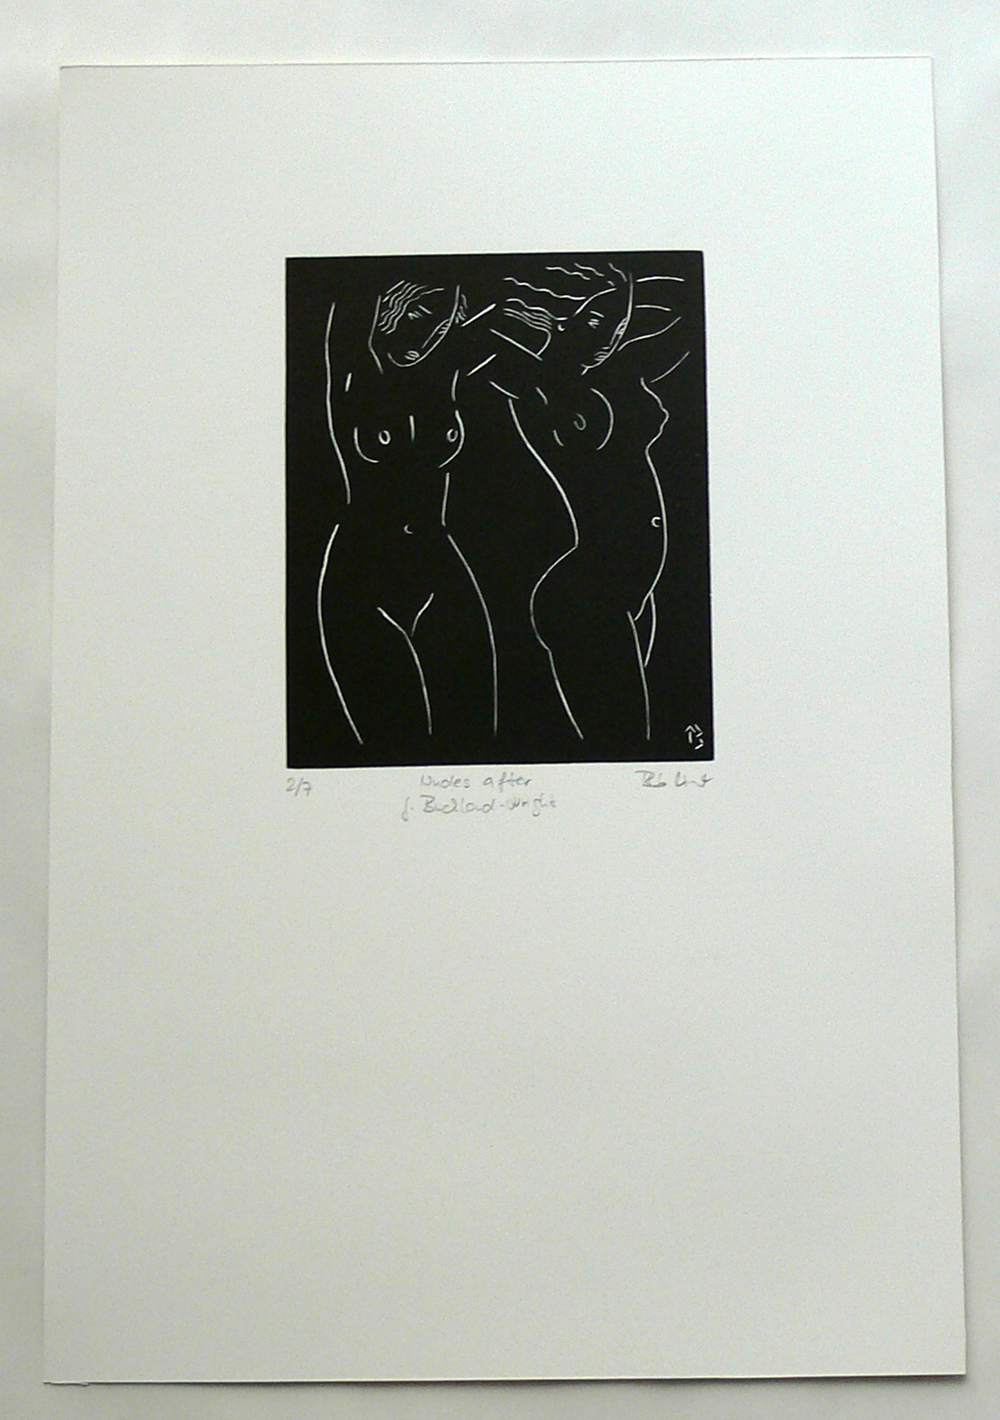 Nudes after J. Buckland-Wright (print)